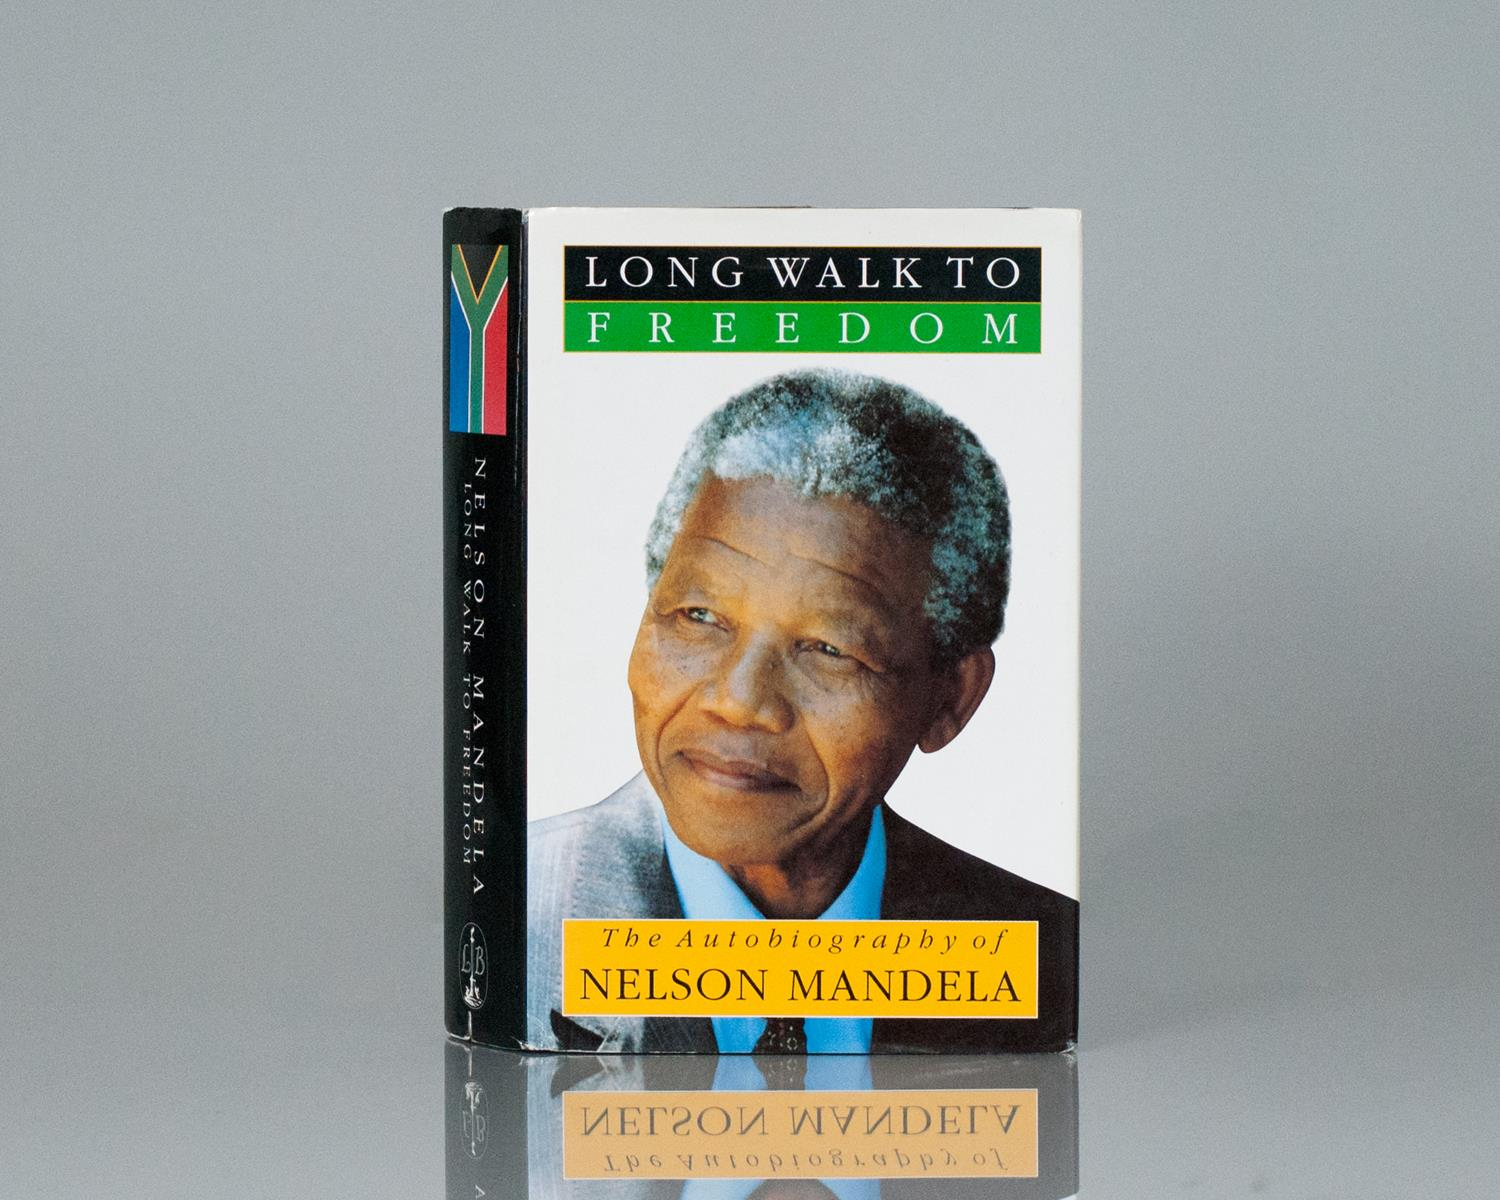 a review of long walk to freedom an autobiography by nelson mandela Adapted by william nicholson from mandela's 1995 autobiography mandela: long walk to freedom nelson mandela death announced at long walk to freedom.